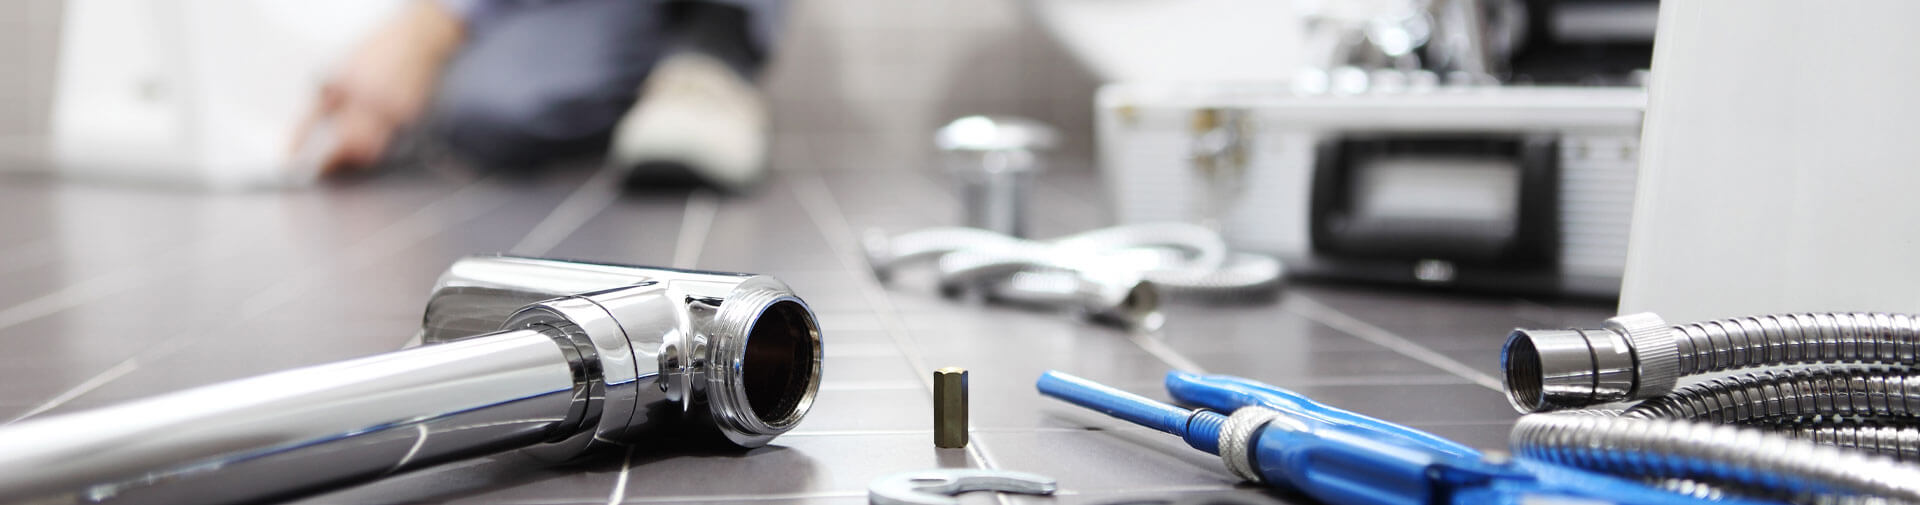 Sicamous Plumber, Plumbing Company and Plumbing Services